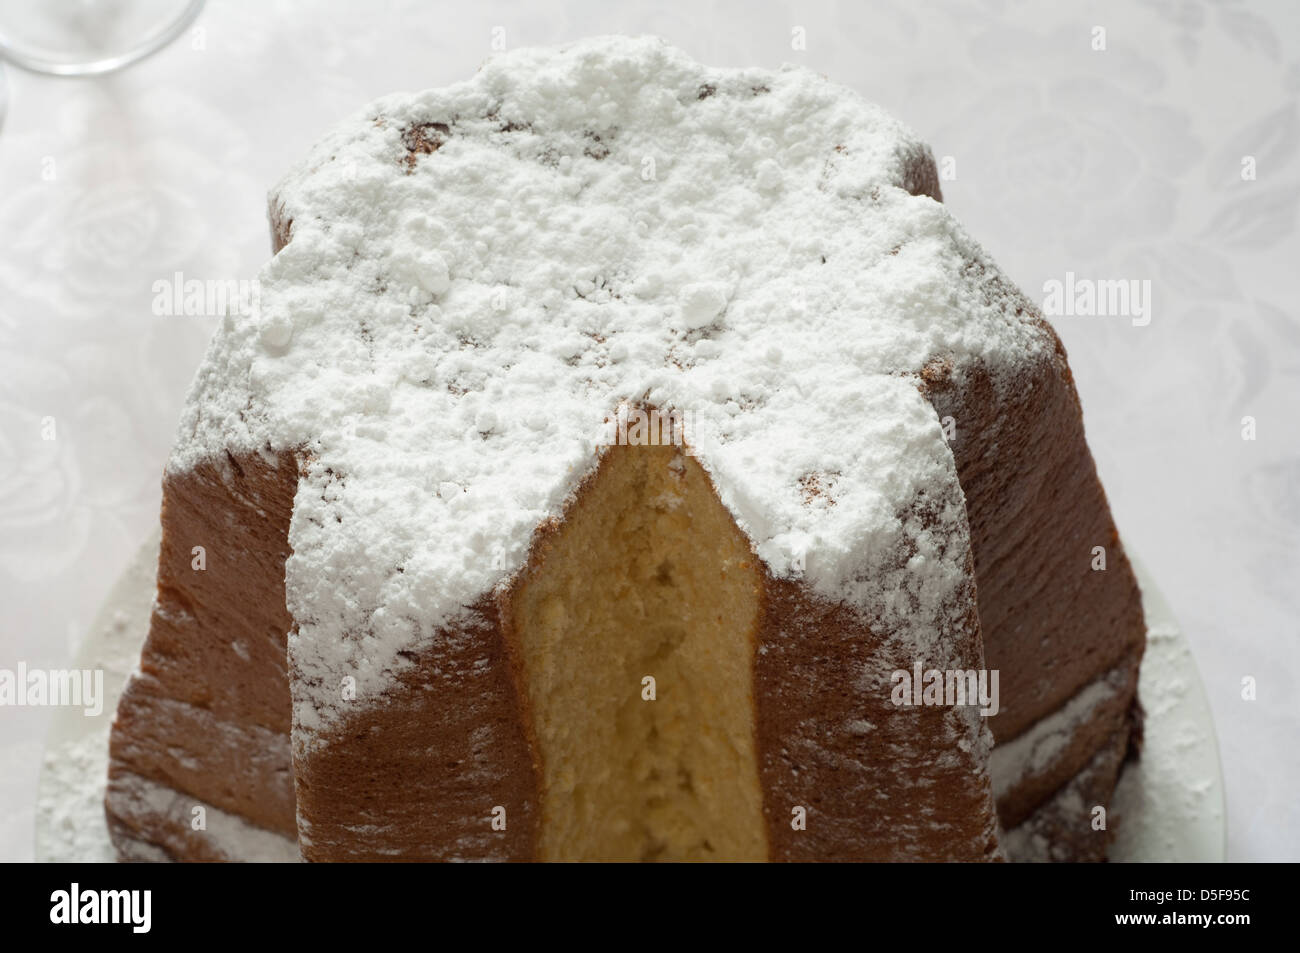 Italian Christmas Cake Pandoro Stock Photos & Italian Christmas Cake ...